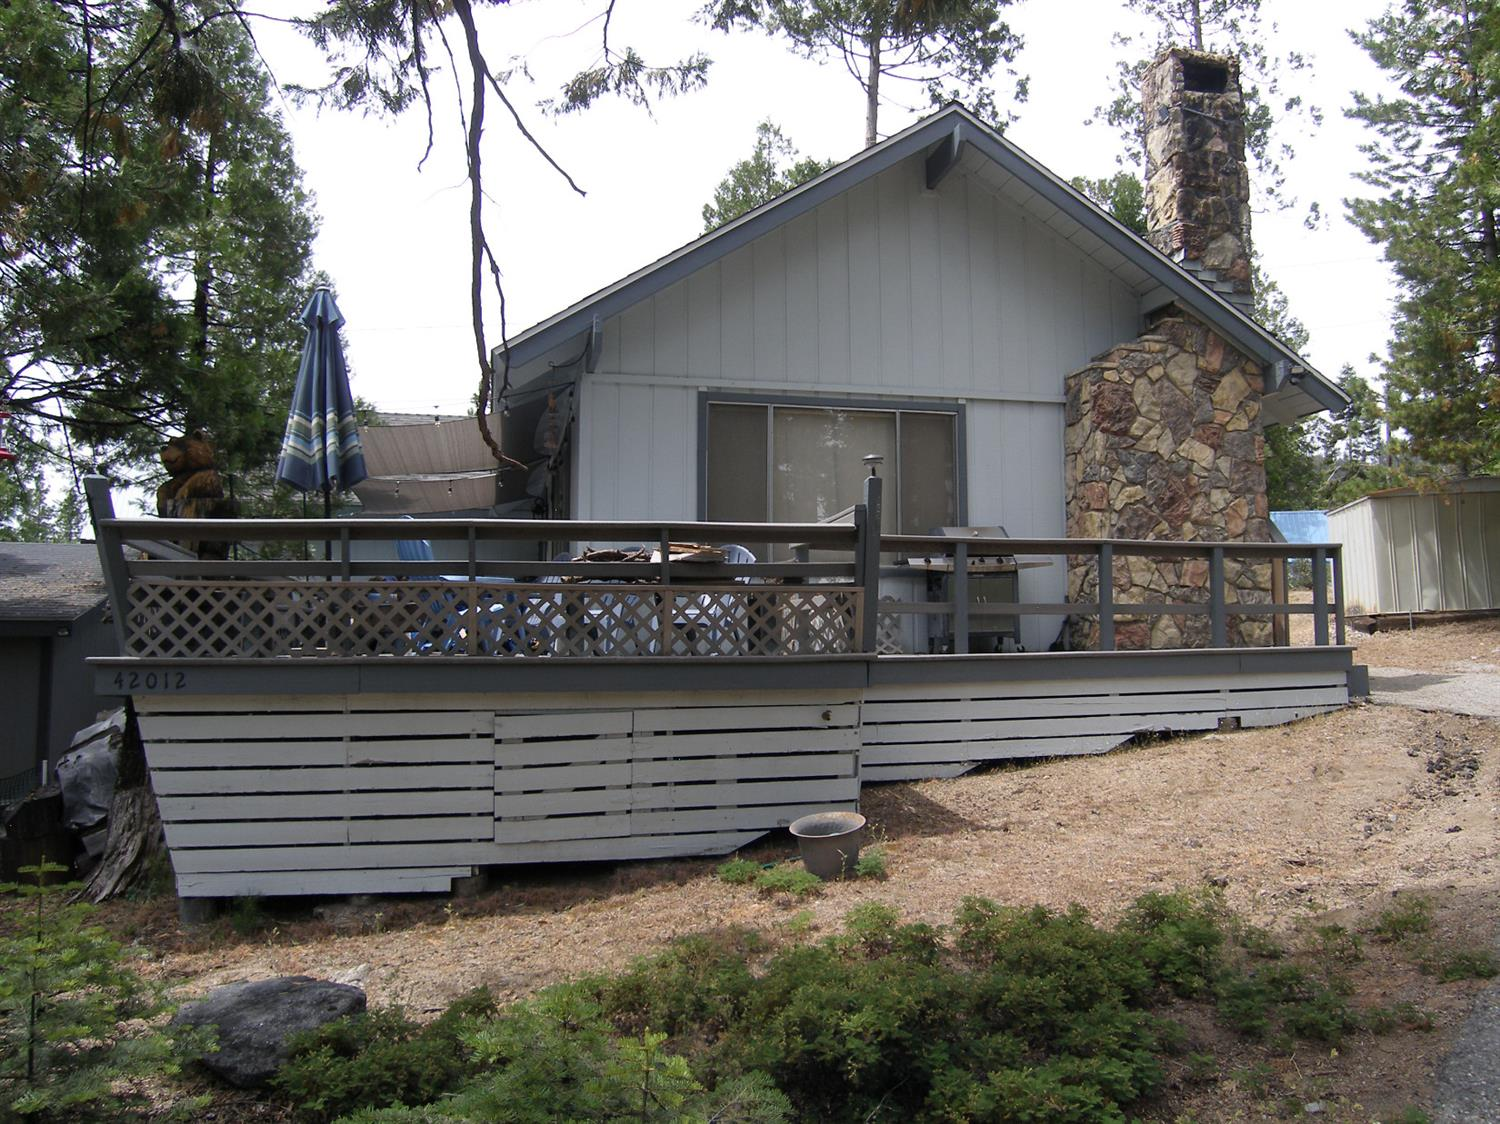 Photo of 42012 Madrone Lane, Shaver Lake, CA 93664